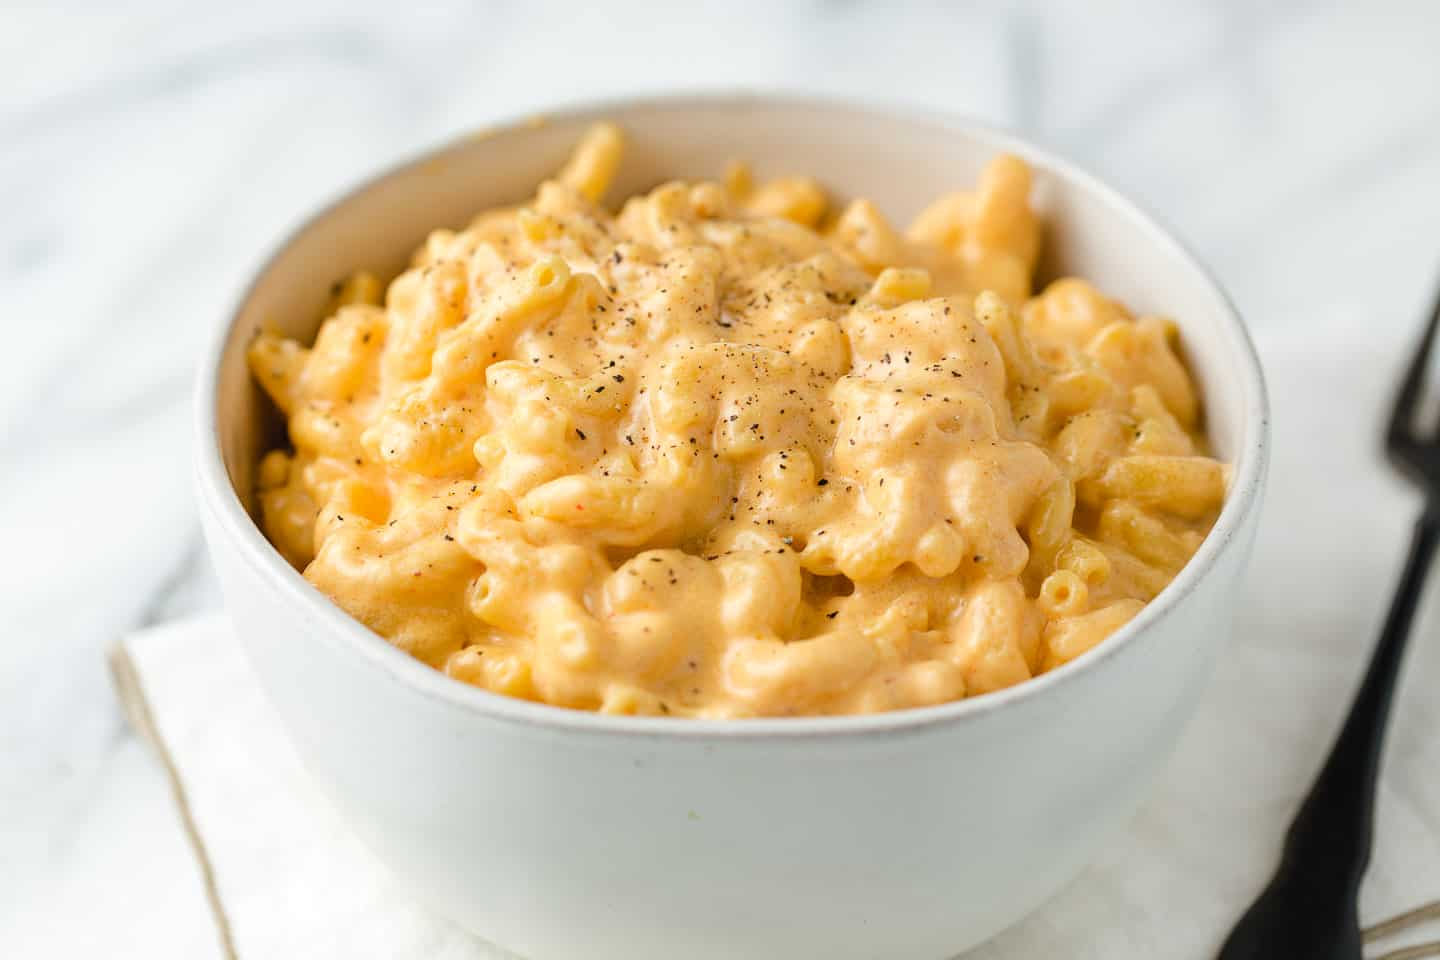 A close up view of mac and cheese in a bowl.